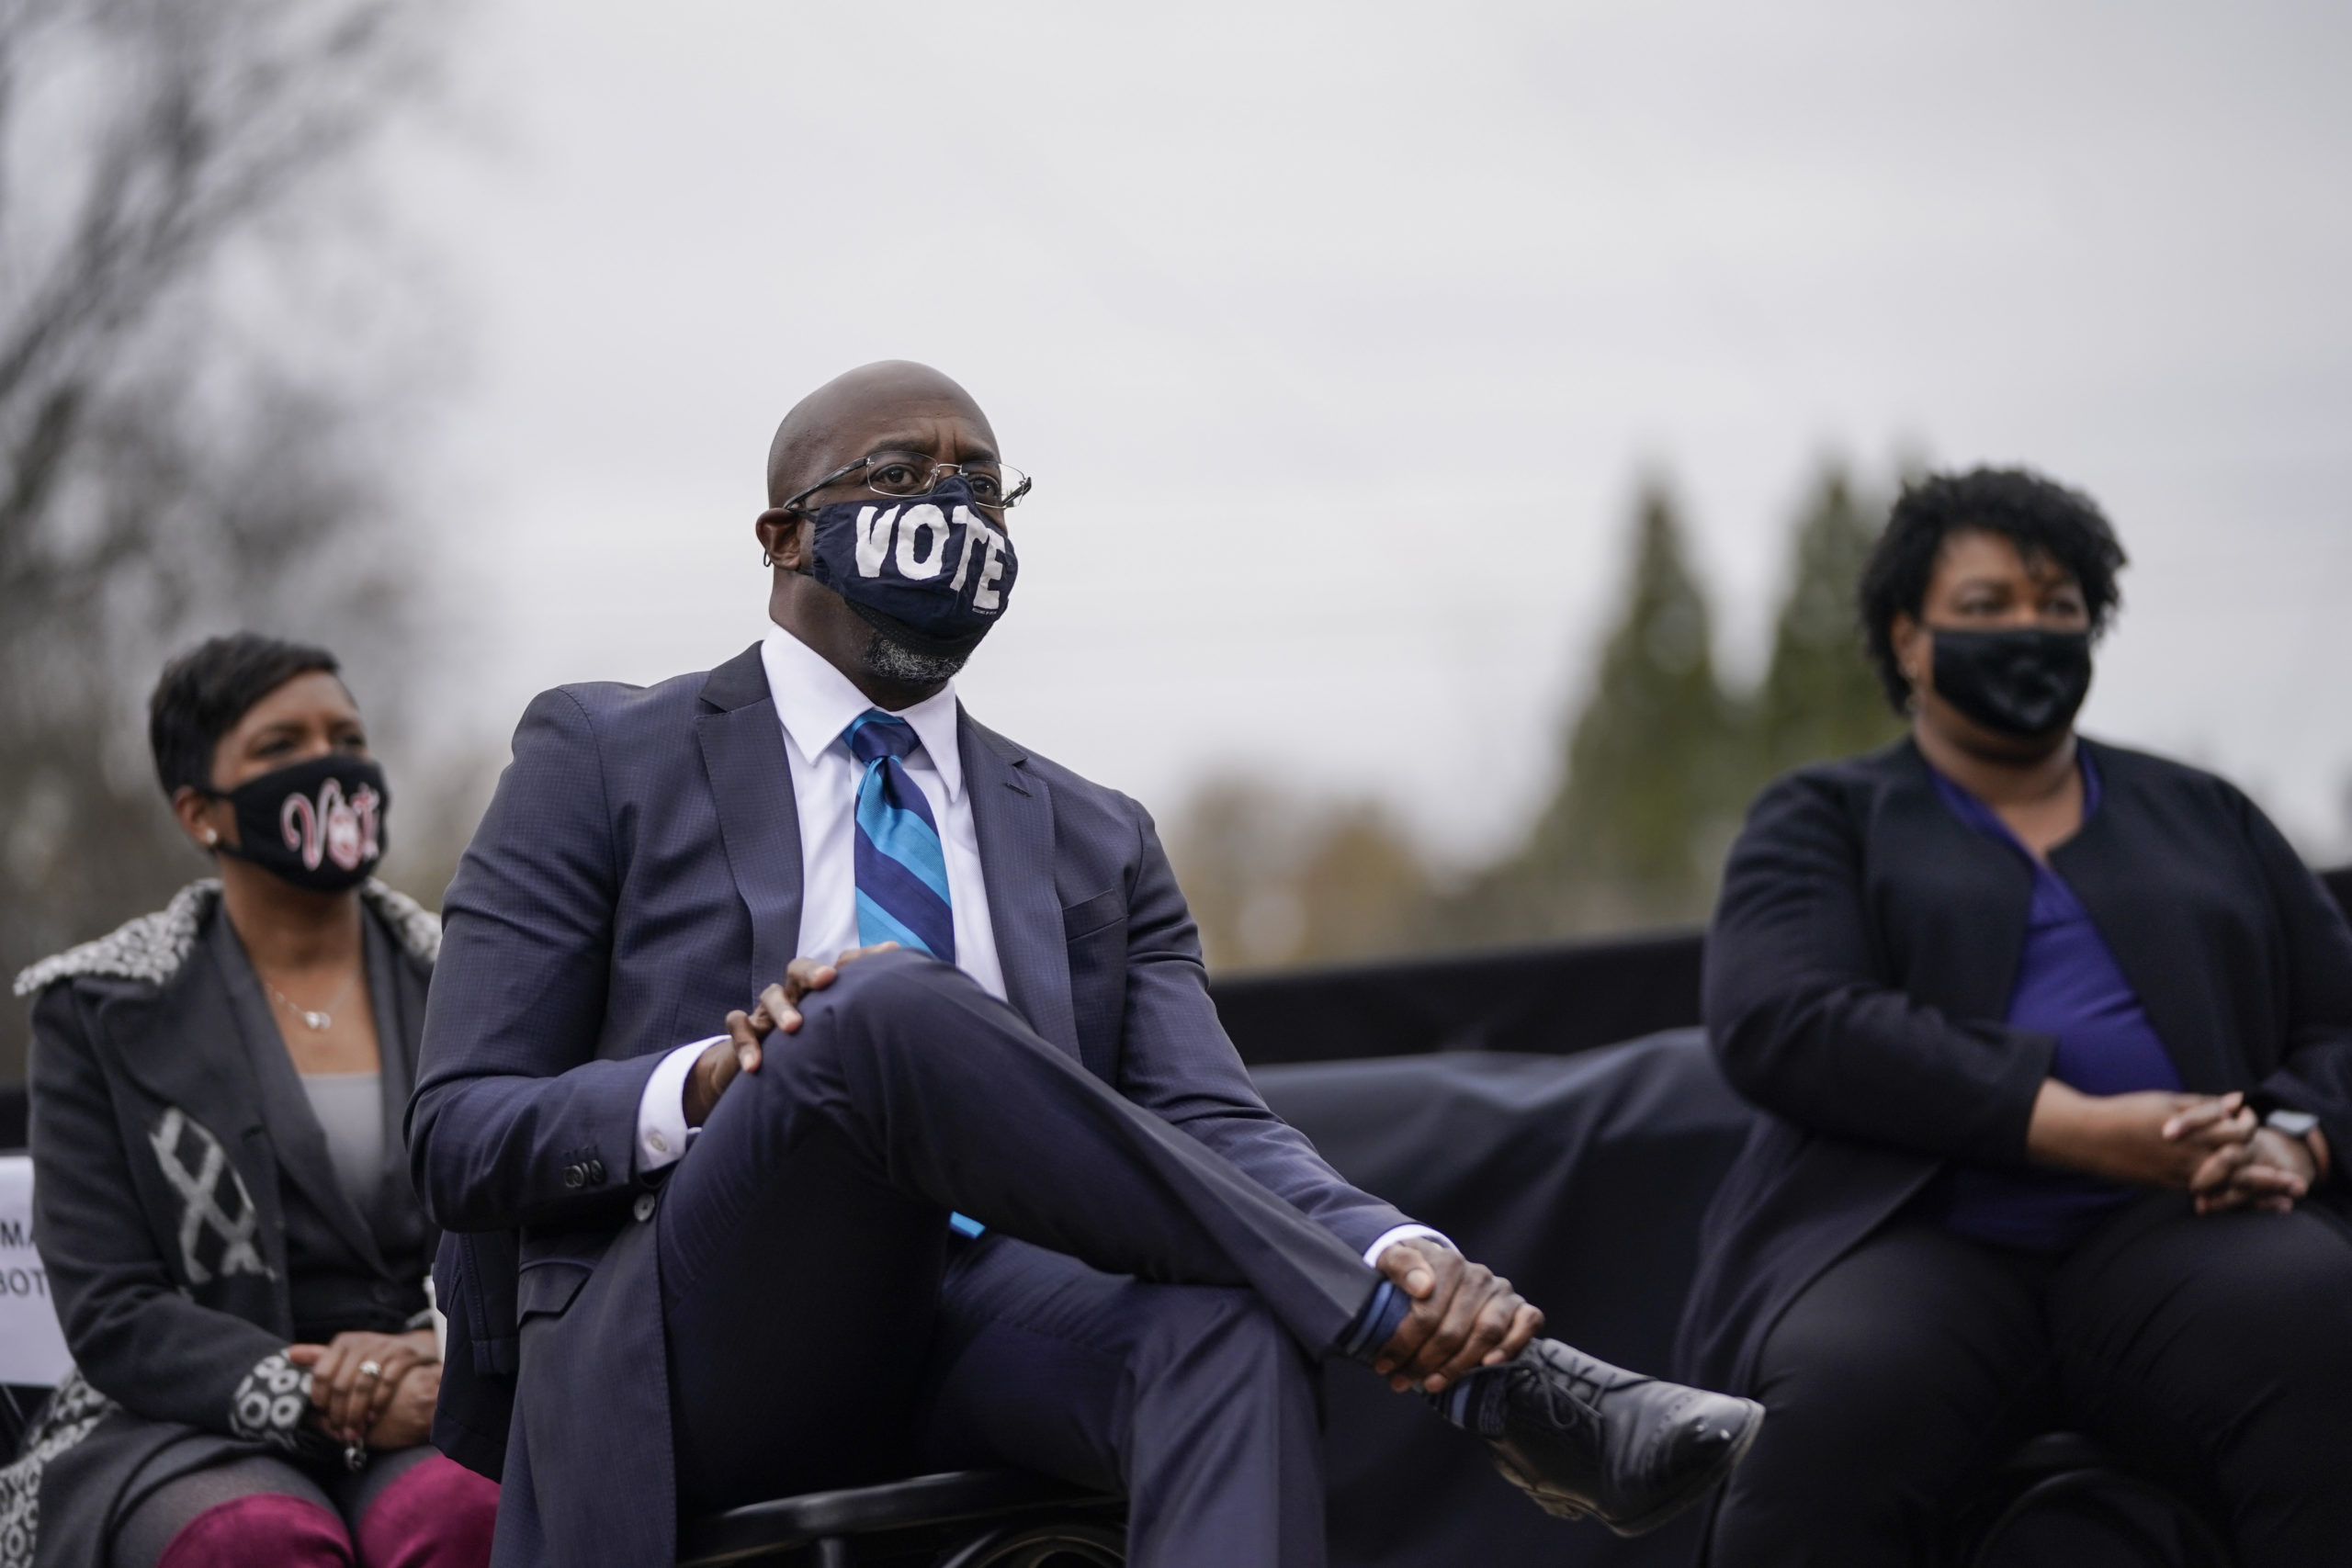 ATLANTA, GA - DECEMBER 15: (L-R) Atlanta Mayor Keisha Lance Bottoms, U.S. Democratic Senate candidate Raphael Warnock and Stacey Abrams listen as U.S. President-elect Joe Biden speaks during a campaign rally at Pullman Yard on December 15, 2020 in Atlanta, Georgia. Biden's stop in Georgia comes less than a month before the January 5 runoff election for Ossoff and Warnock as they try to unseat Republican incumbents Sen. David Perdue and Sen. Kelly Loeffler. (Drew Angerer/Getty Images)